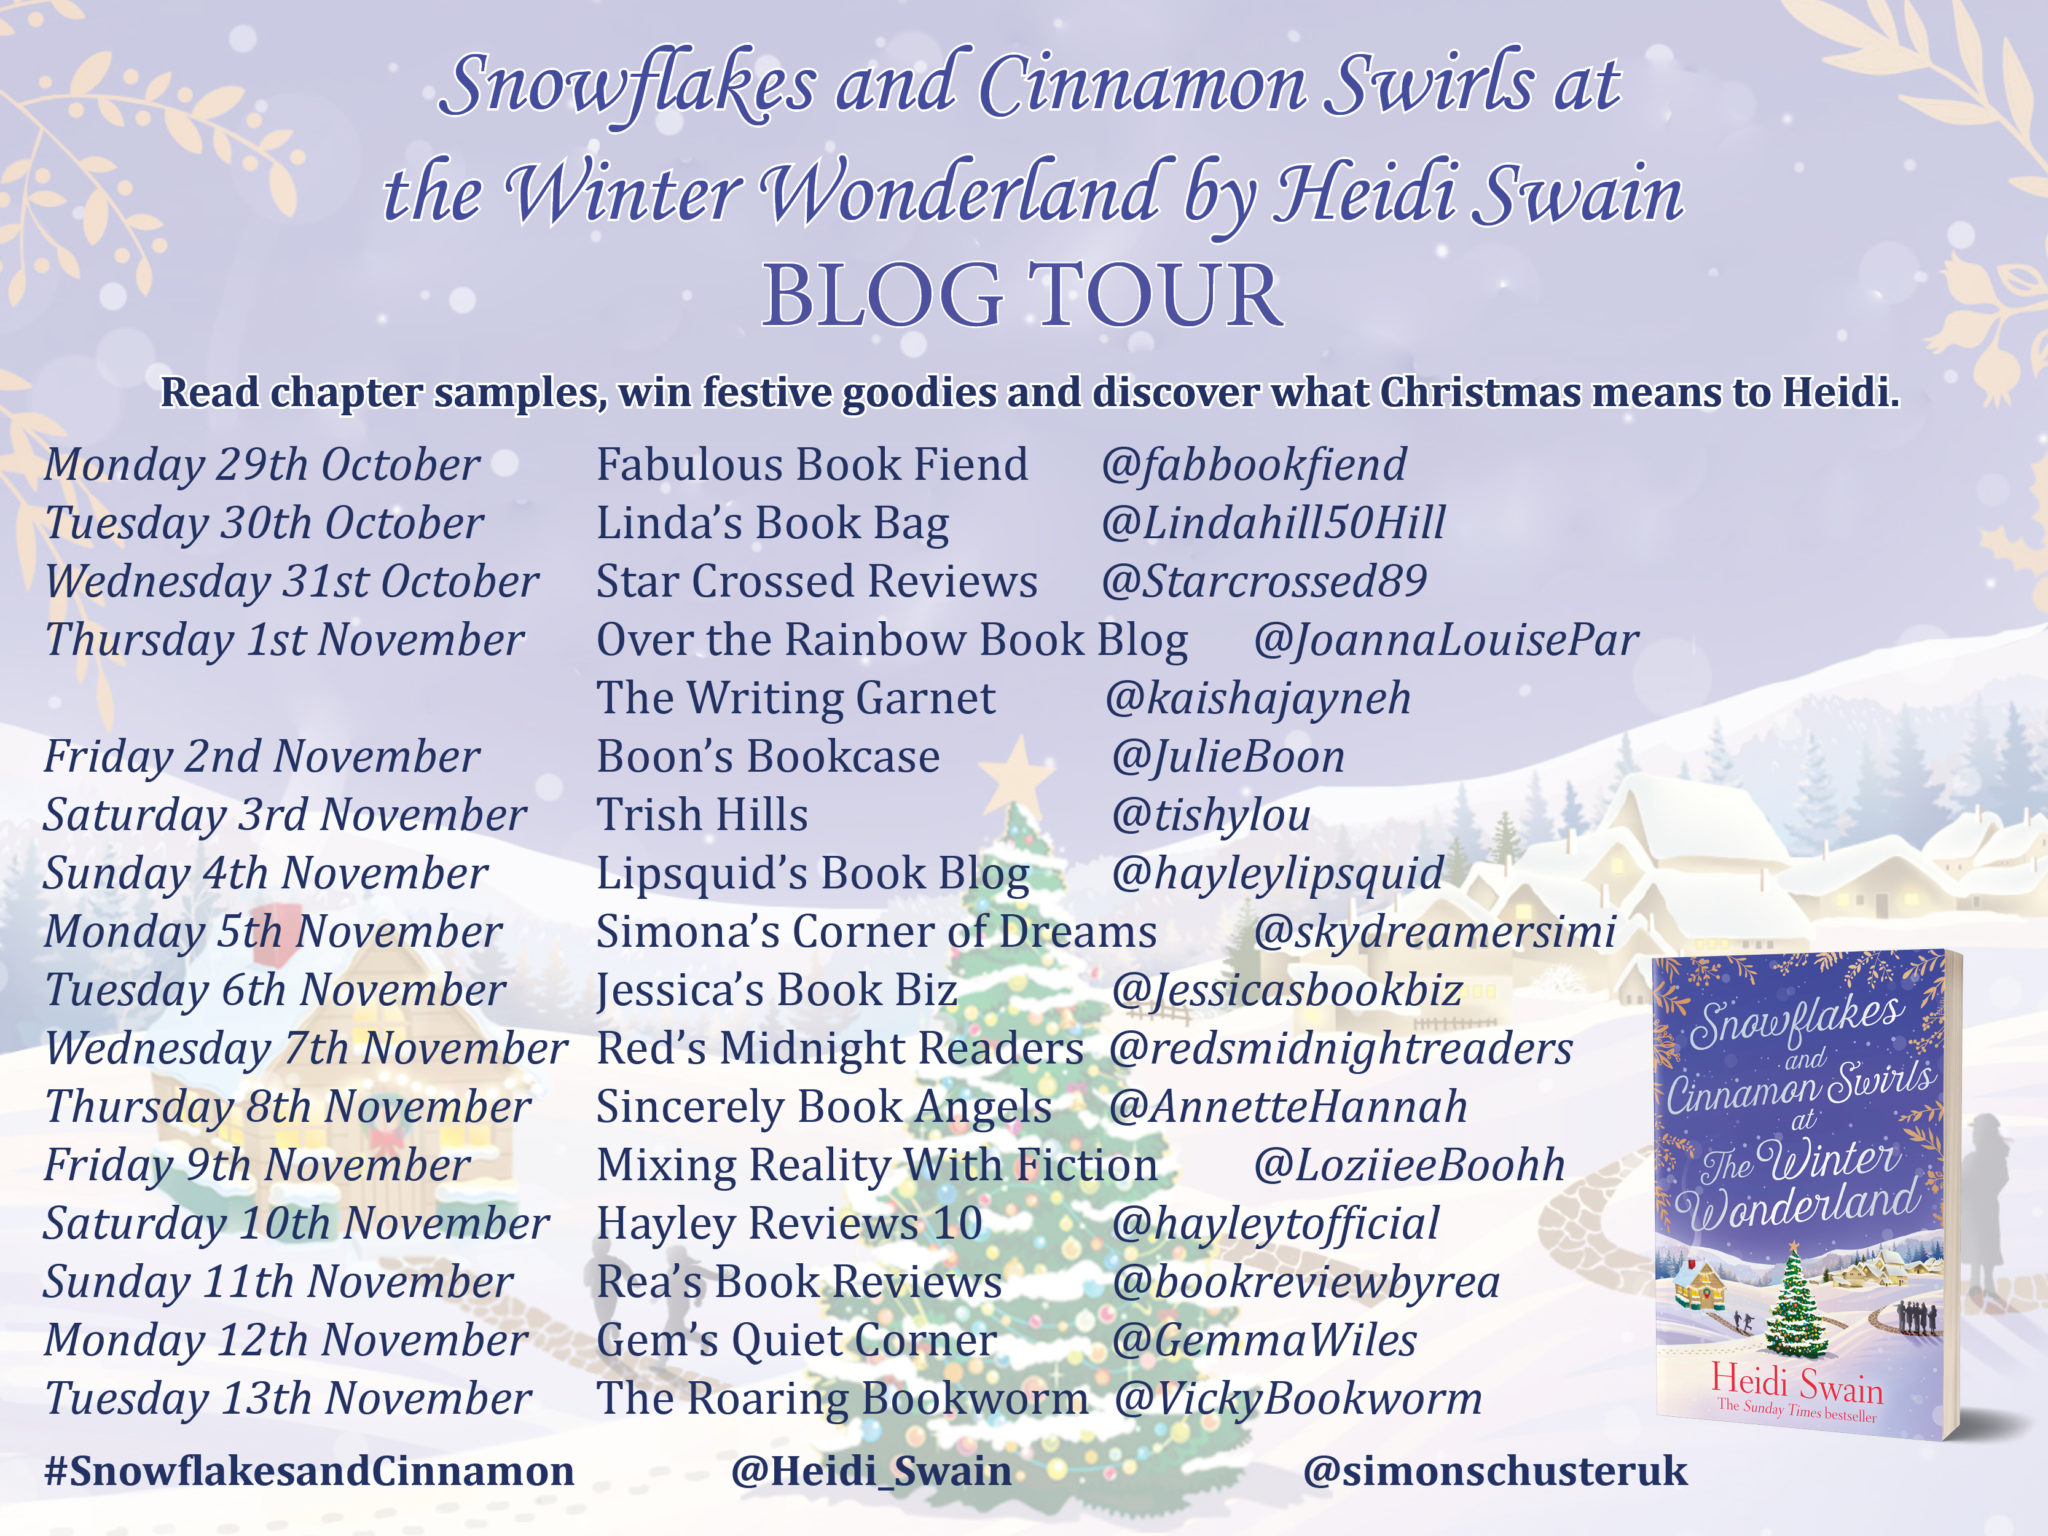 Blog Tour Review: Snowflakes and Cinnamon Swirls at the Winter Wonderland